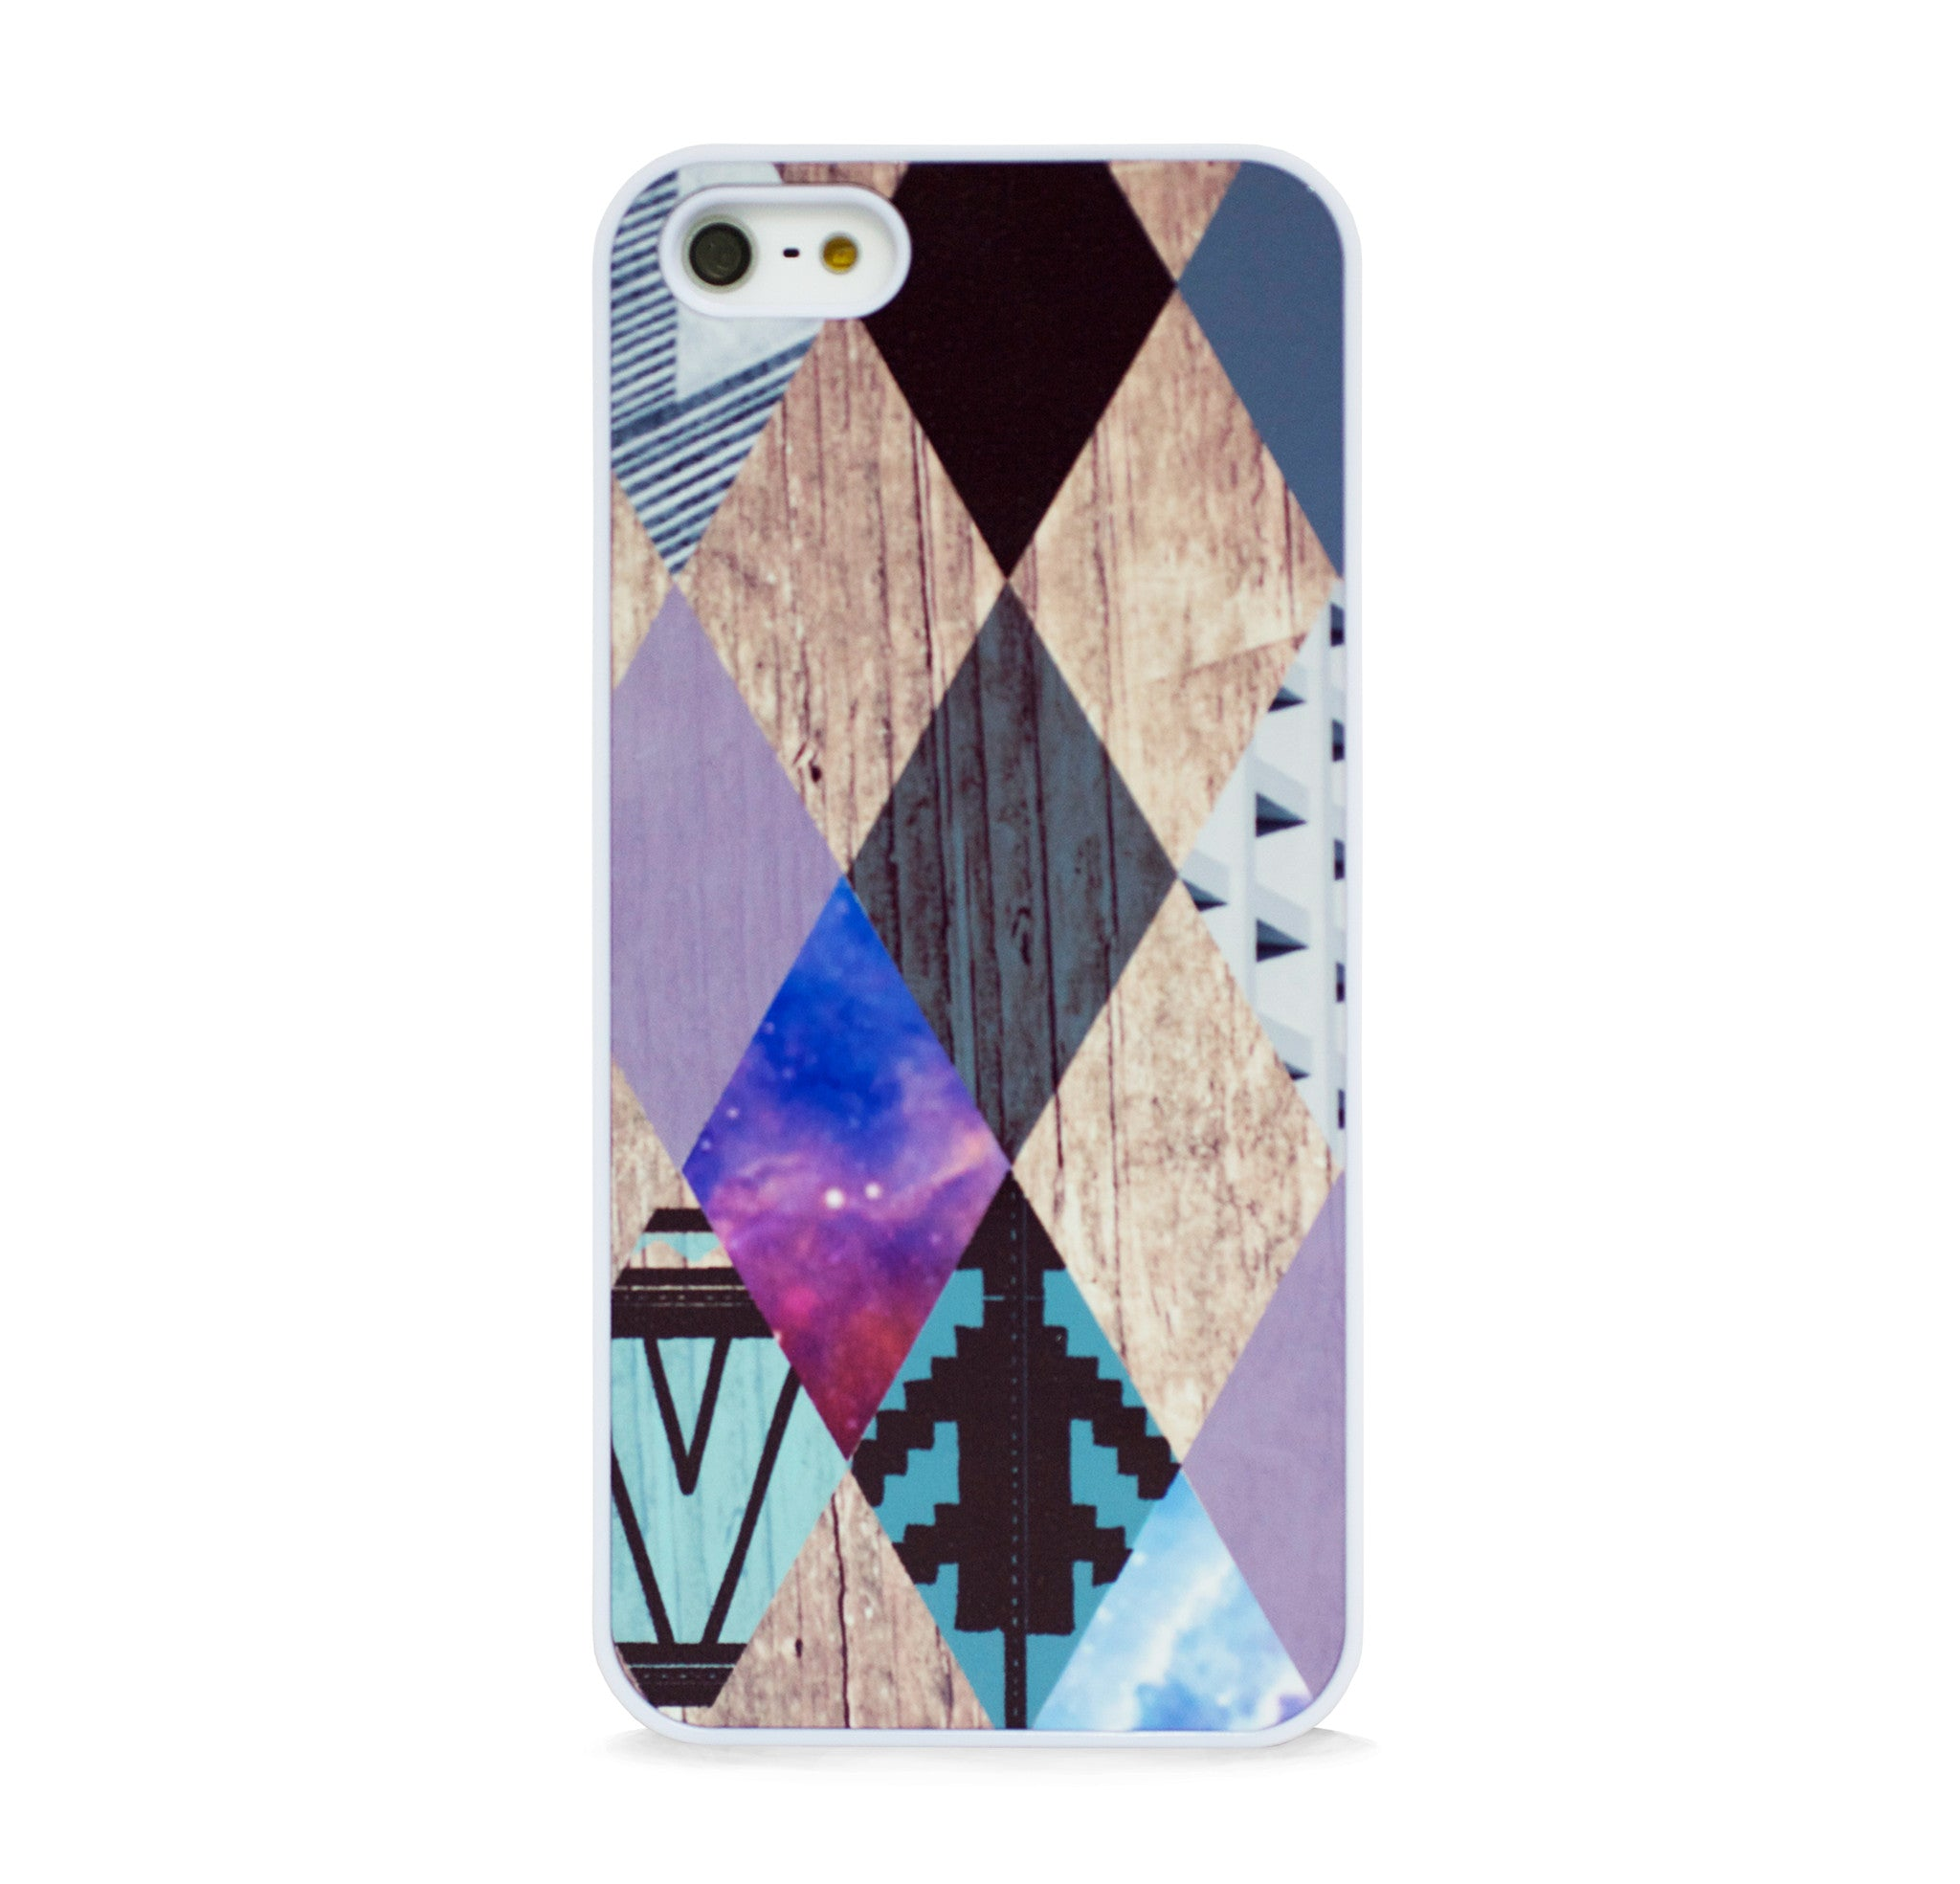 AZTEC MULTI ARGYLE WOOD IPHONE 5/5S CASE